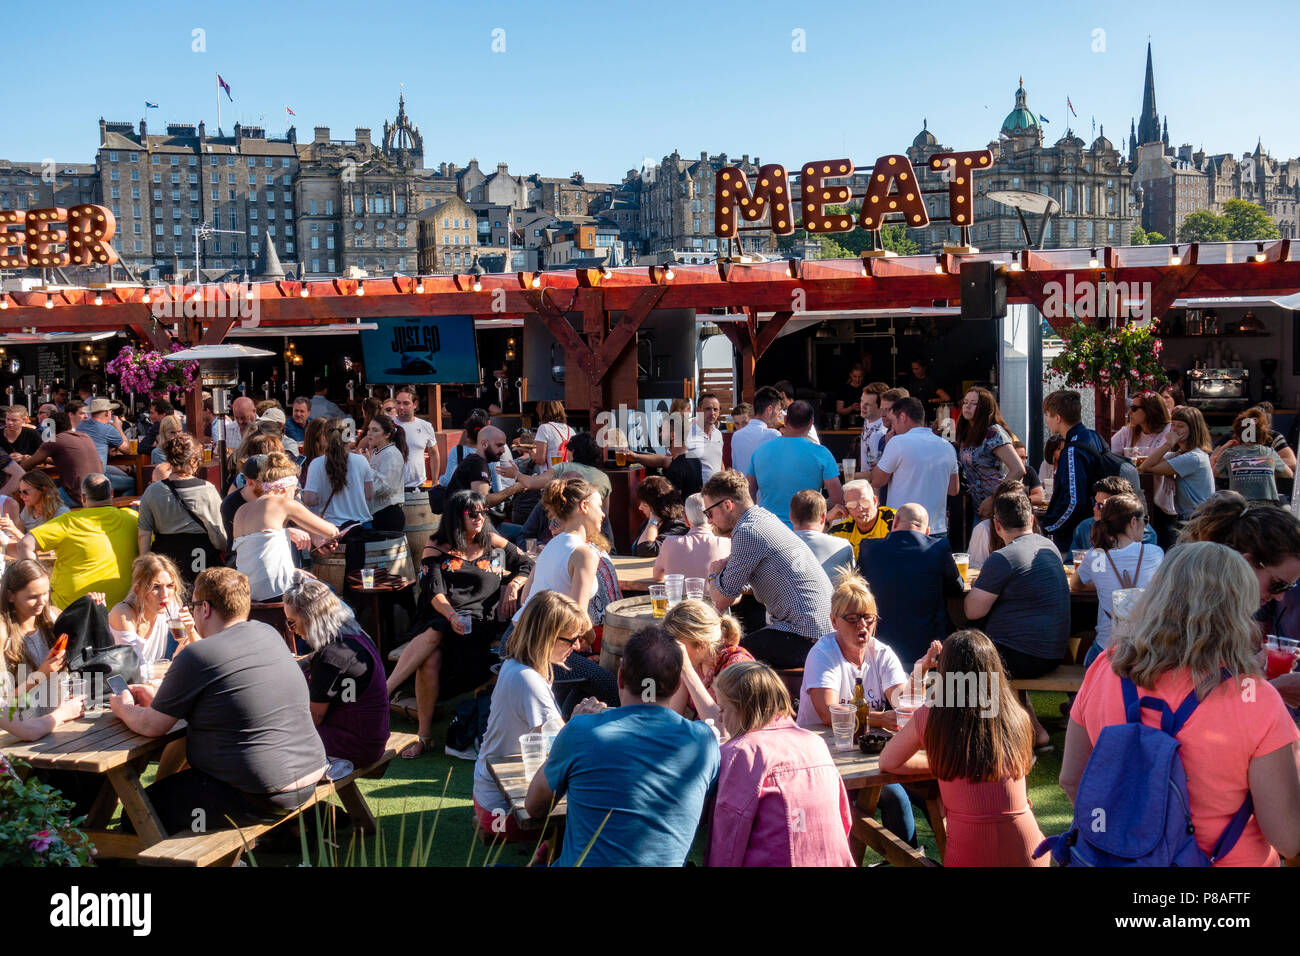 Busy outdoor bar in summer at Waverley Market shopping mall on Princes Street in Edinburgh, Scotland UK - Stock Image